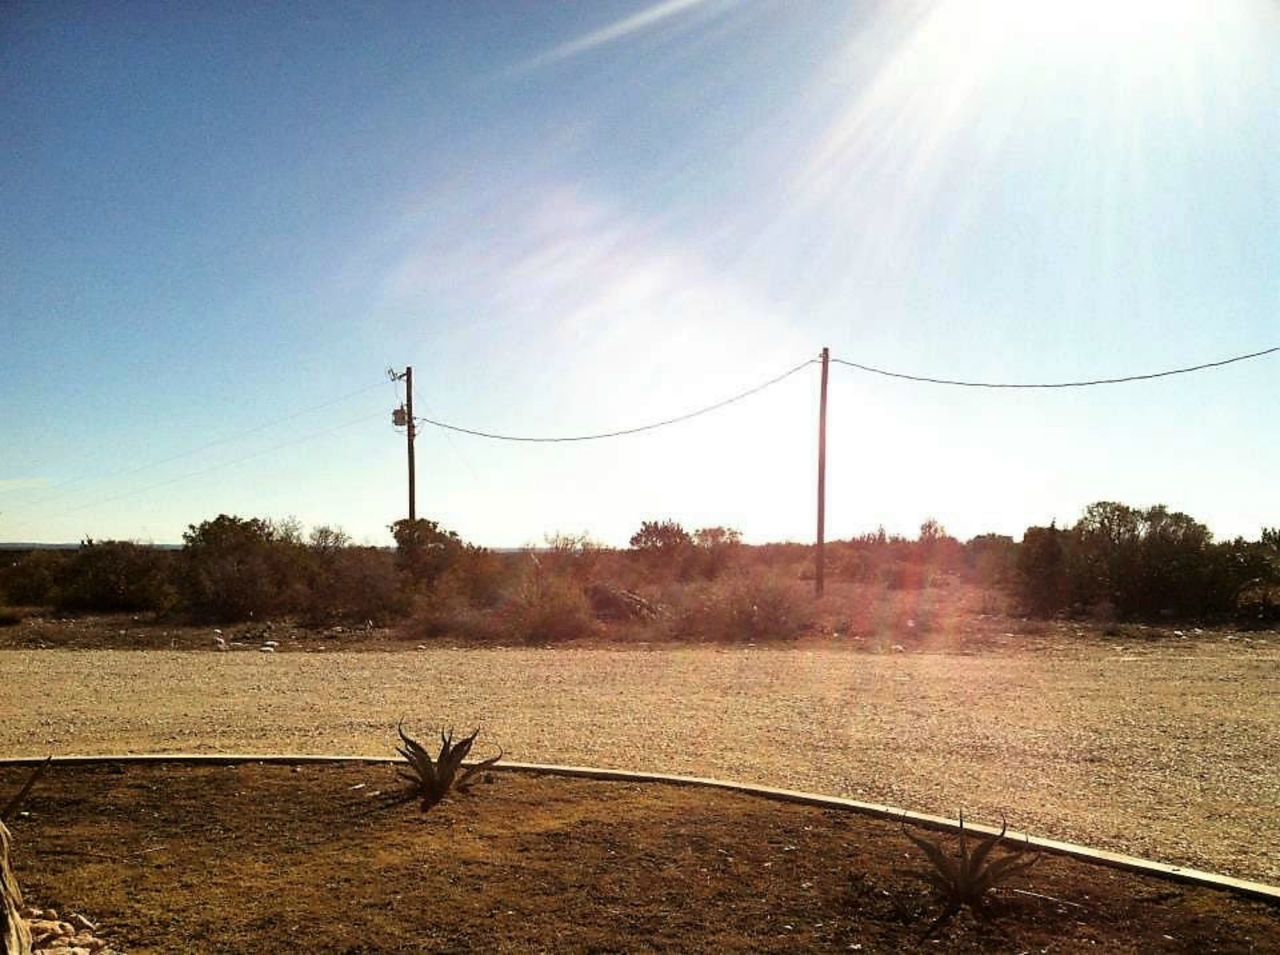 sunlight, day, no people, sky, outdoors, nature, field, tree, electricity, beauty in nature, growth